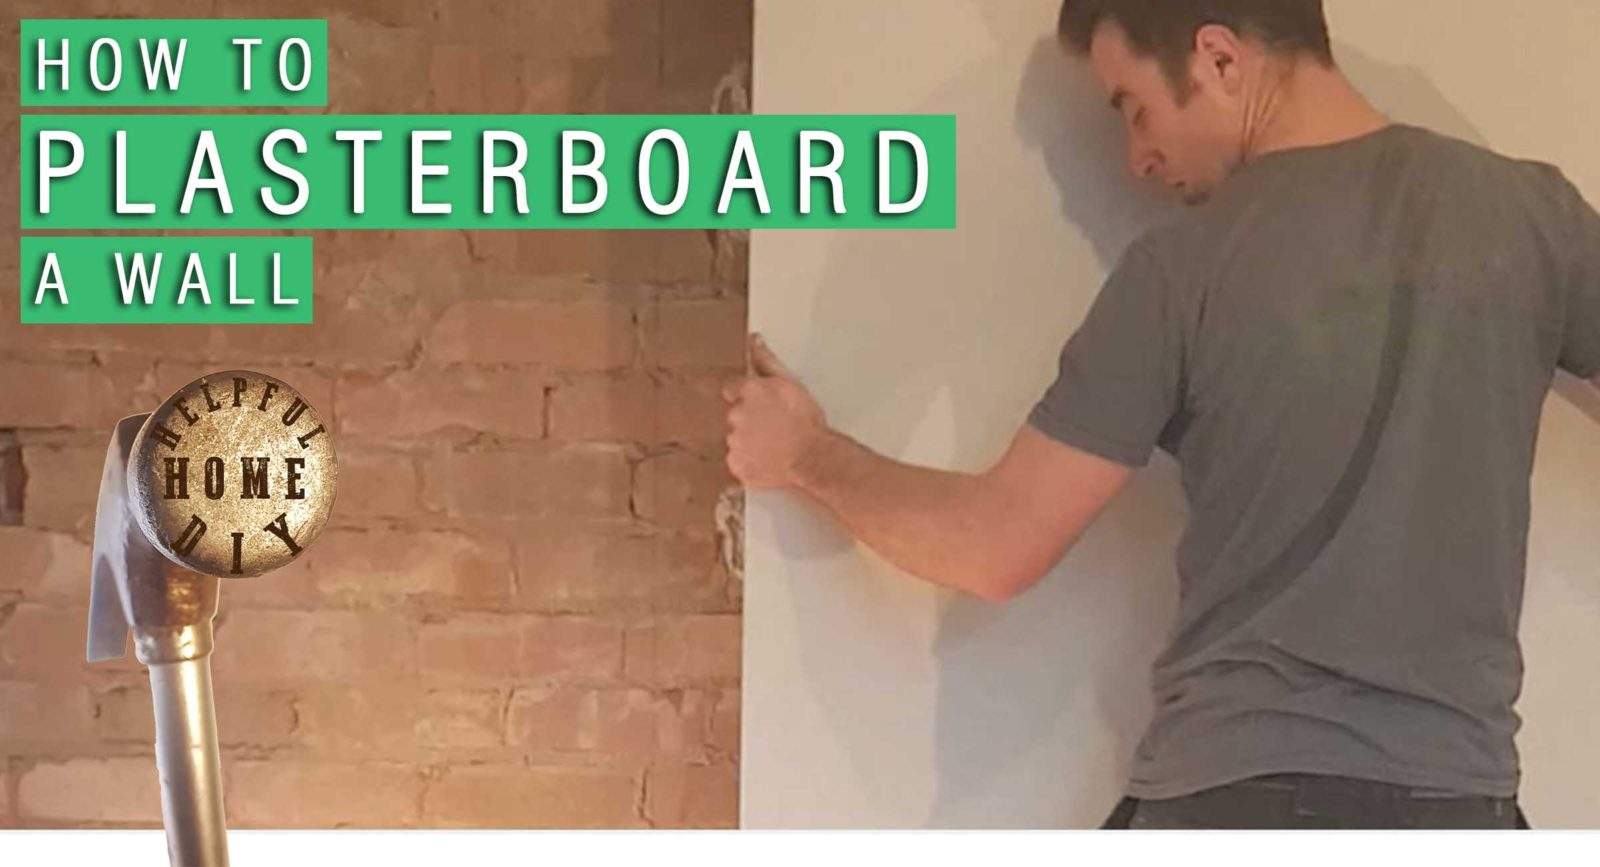 """picture of sam holding up a sheet of plasterboard against a brick wall. title reads """"how to plasterboard a wall"""""""